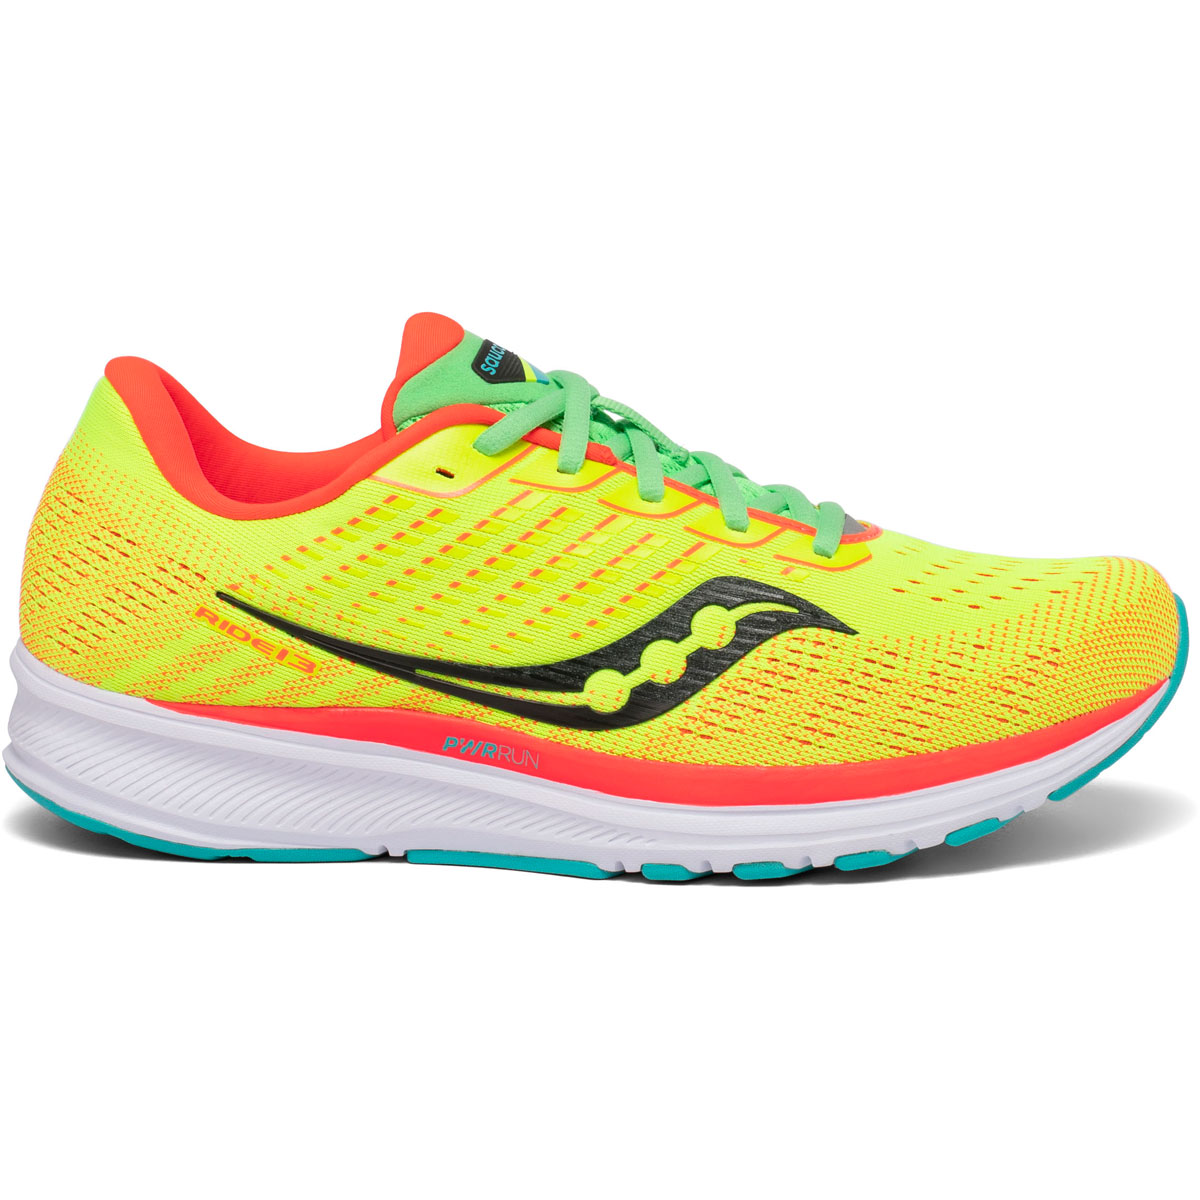 Men's Saucony Ride 13 Running Shoe - Color: Red Mutant - Size: 7 - Width: Regular, Red Mutant, large, image 1